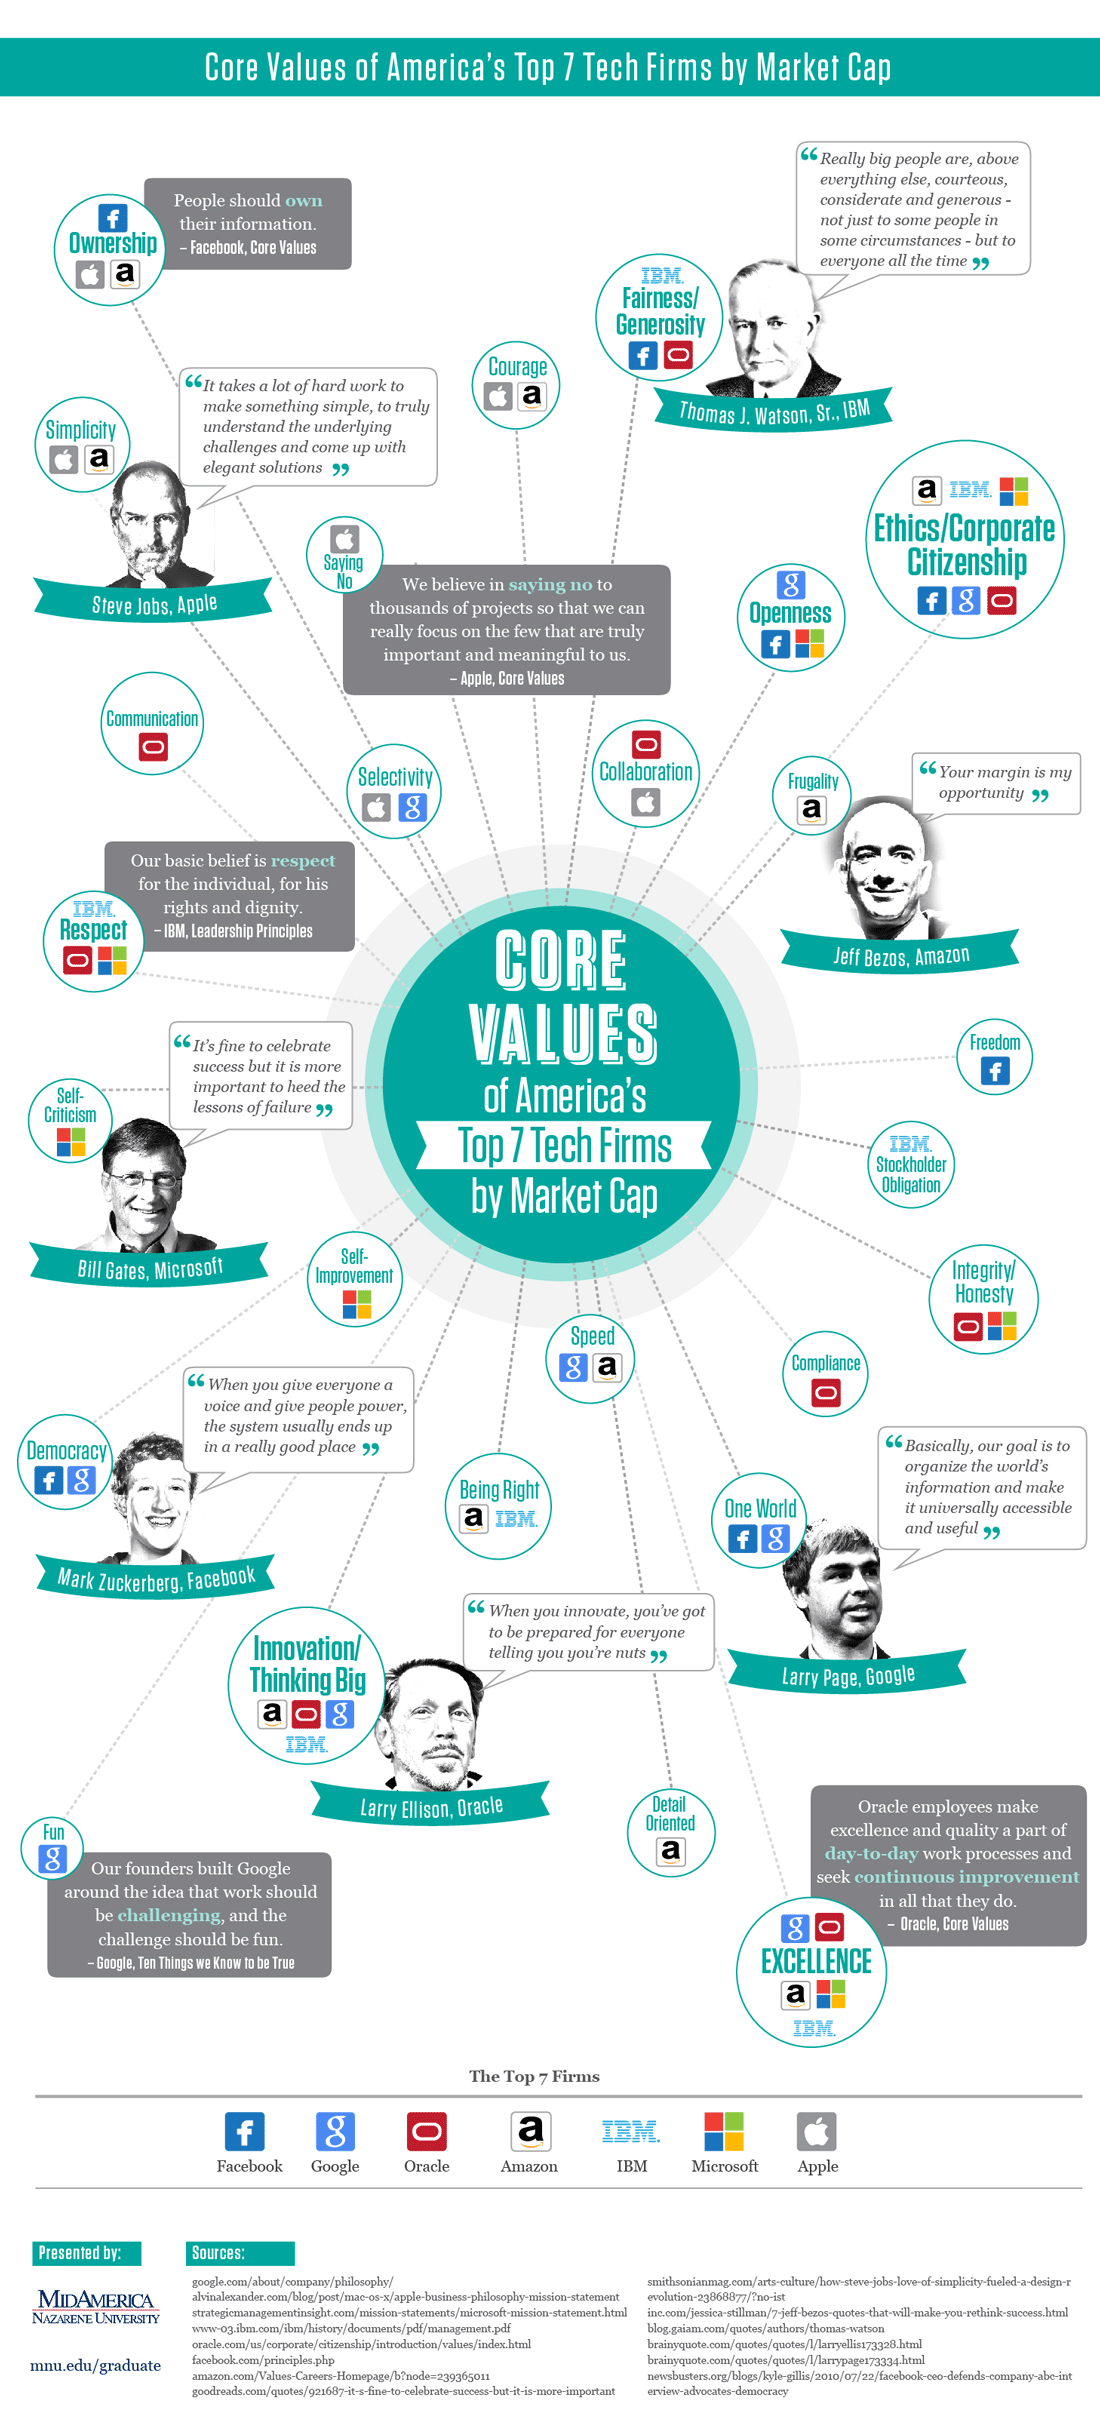 Core values of top tech firms – an infographic